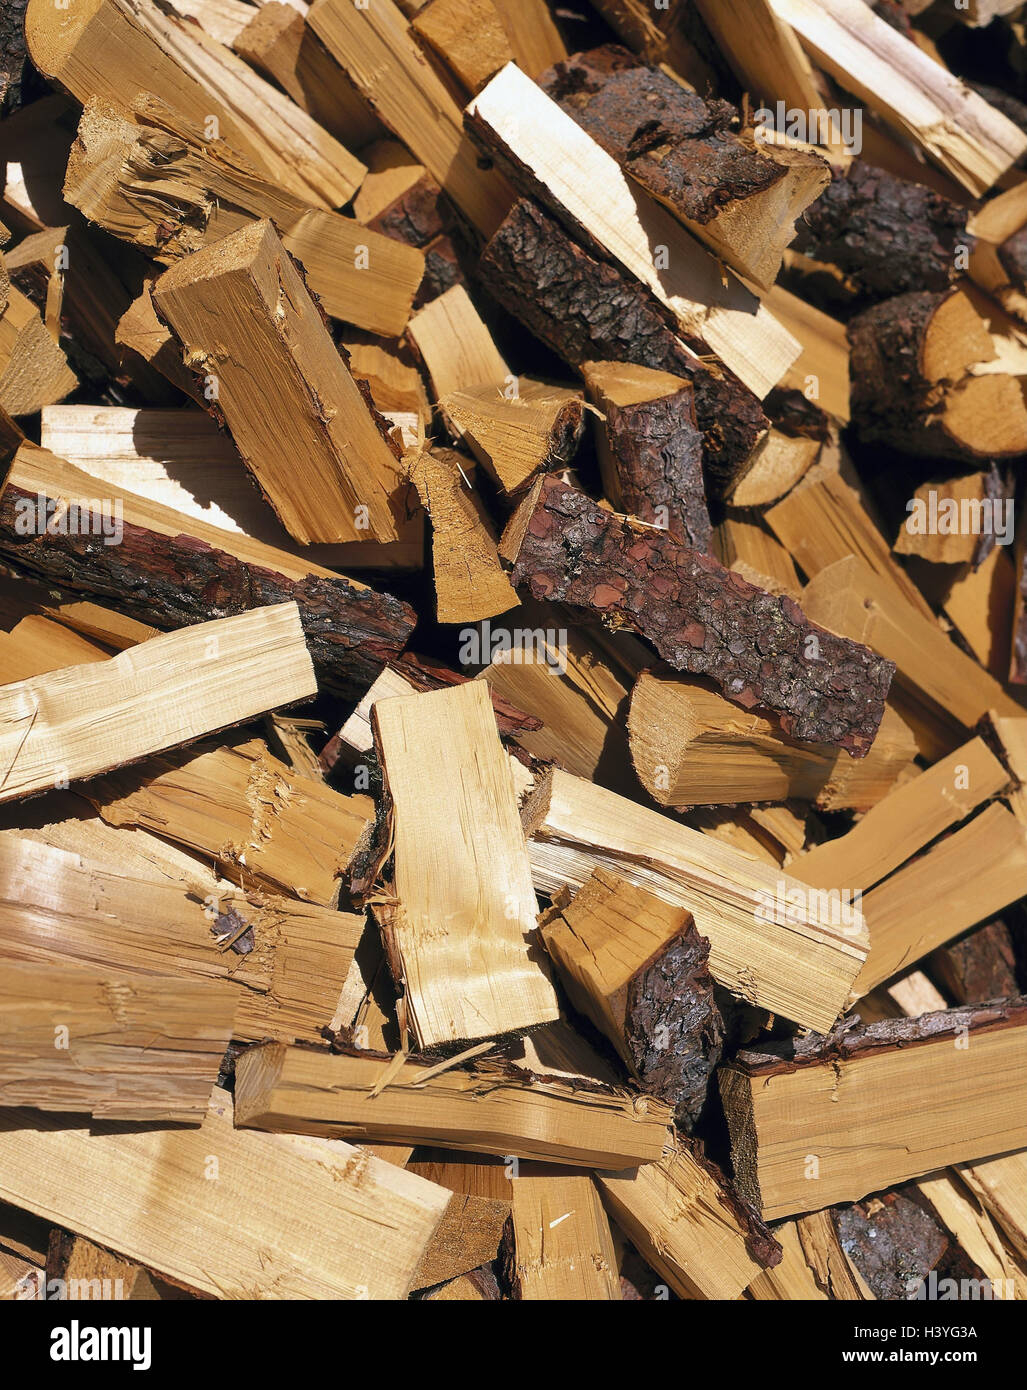 Firewood, heap, detail, wooden, Holzscheiter, softwood, spruce, trunks, strains, chopped, minced, fuel, product - Stock Image